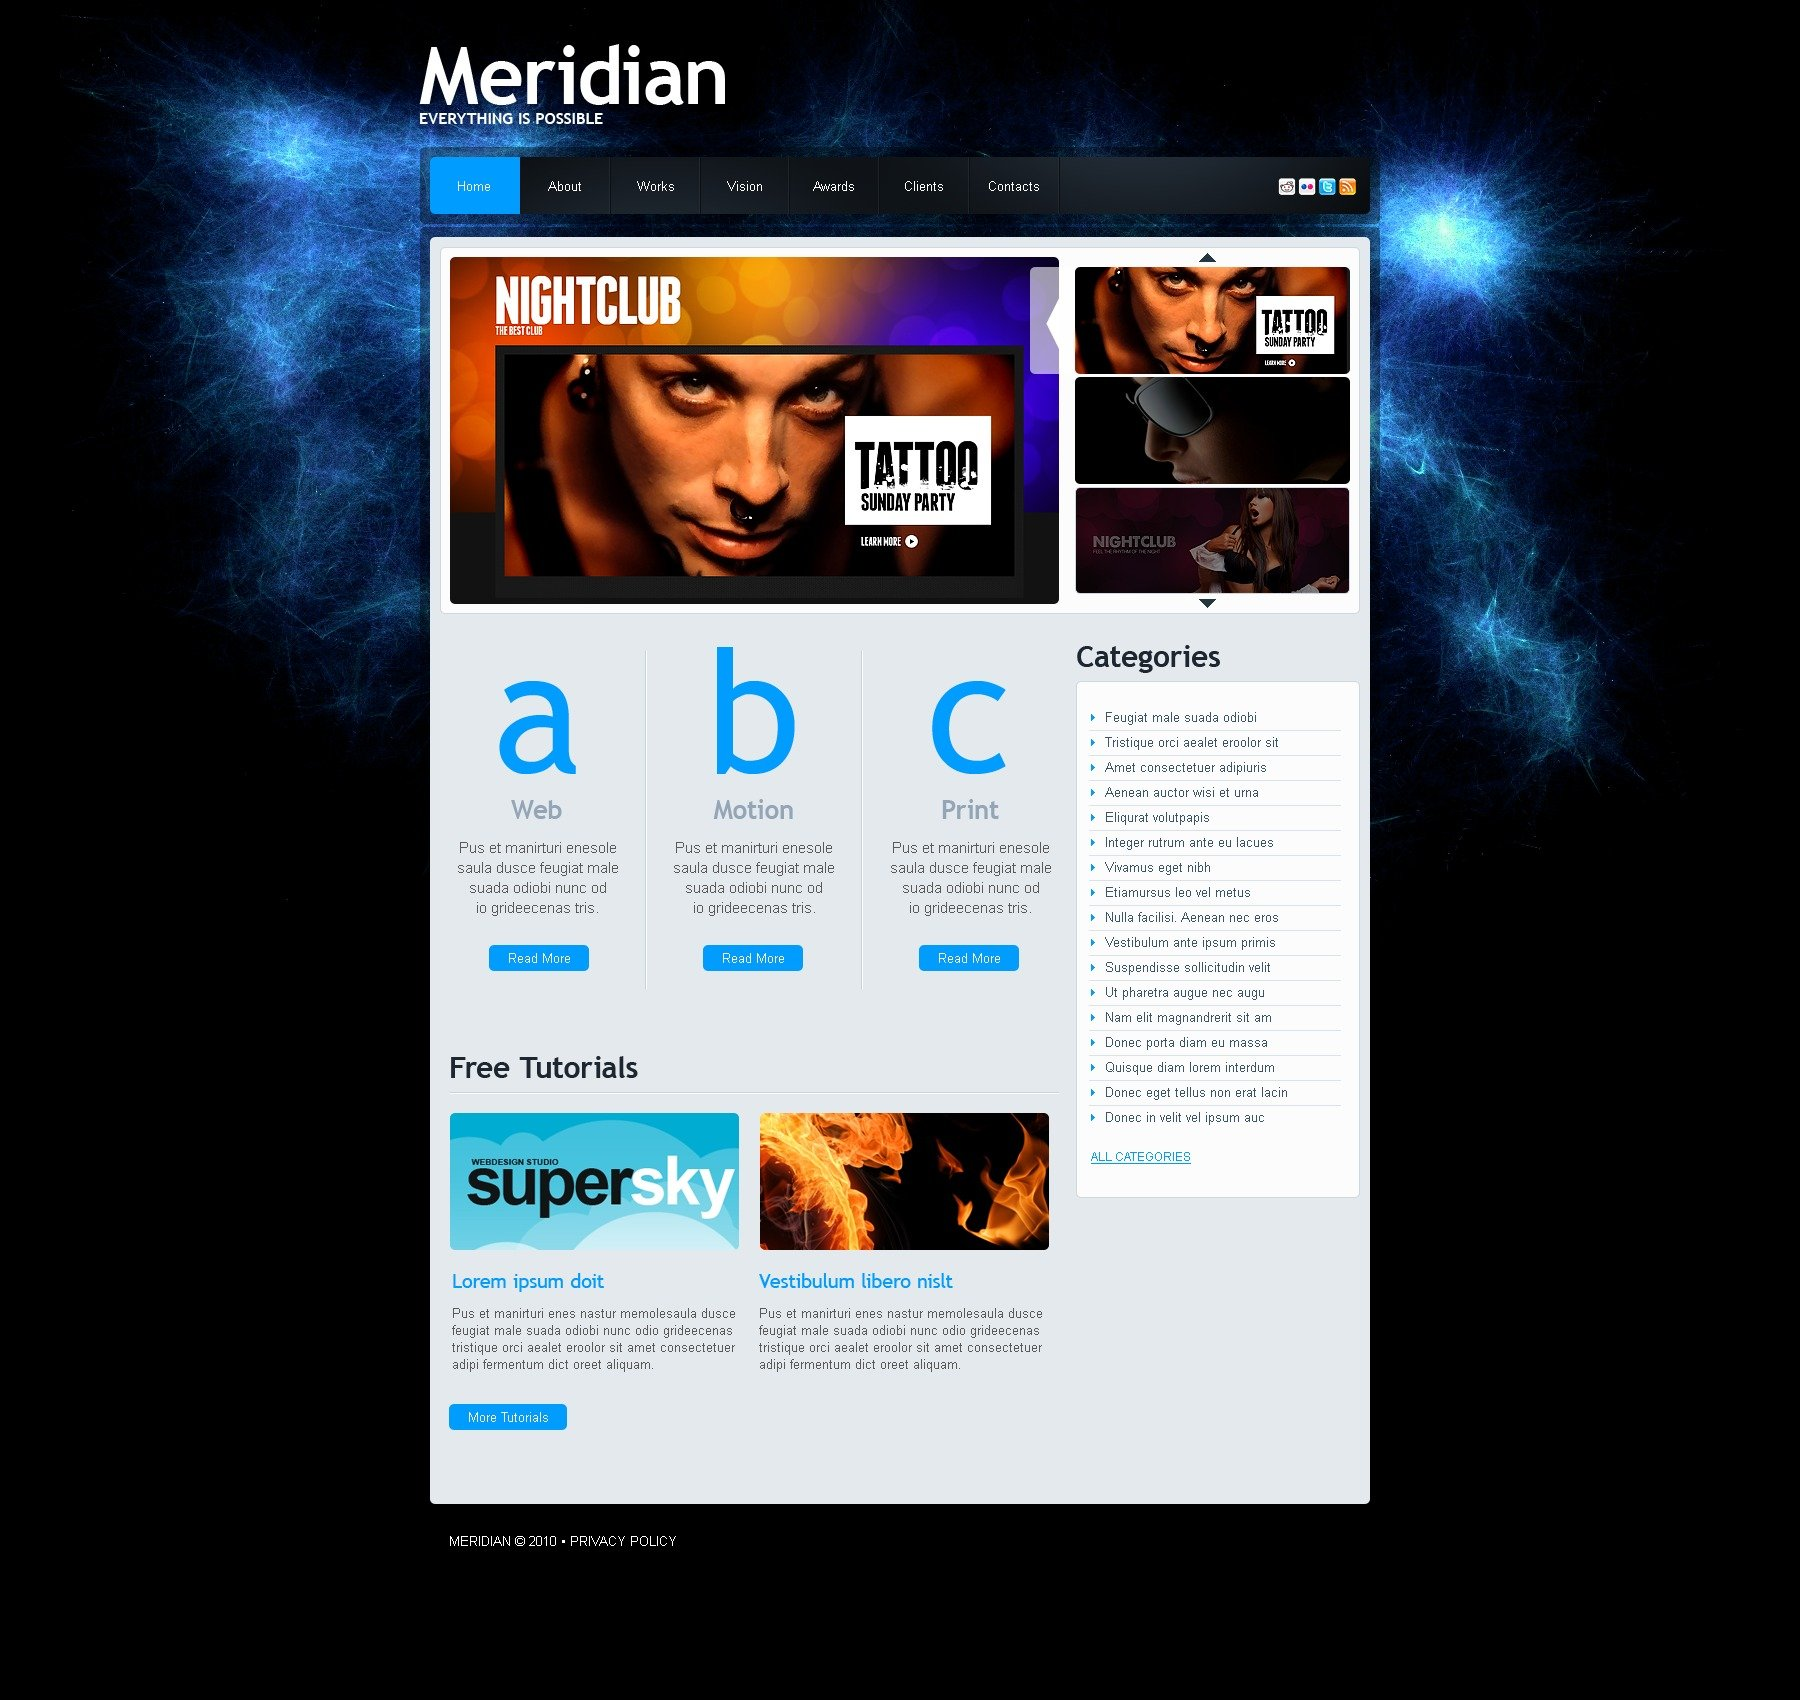 The Meridian Design Studio PSD Design 54219, one of the best PSD templates of its kind (web design, flash 8, wide), also known as meridian design studio PSD template, creative art gallery PSD template, artists PSD template, painting PSD template, painters PSD template, web development PSD template, webmasters PSD template, designers PSD template, internet PSD template, www PSD template, sites PSD template, web design PSD template, webpage PSD template, personal portfolio and related with meridian design studio, creative art gallery, artists, painting, painters, web development, webmasters, designers, internet, www, sites, web design, webpage, personal portfolio, etc.